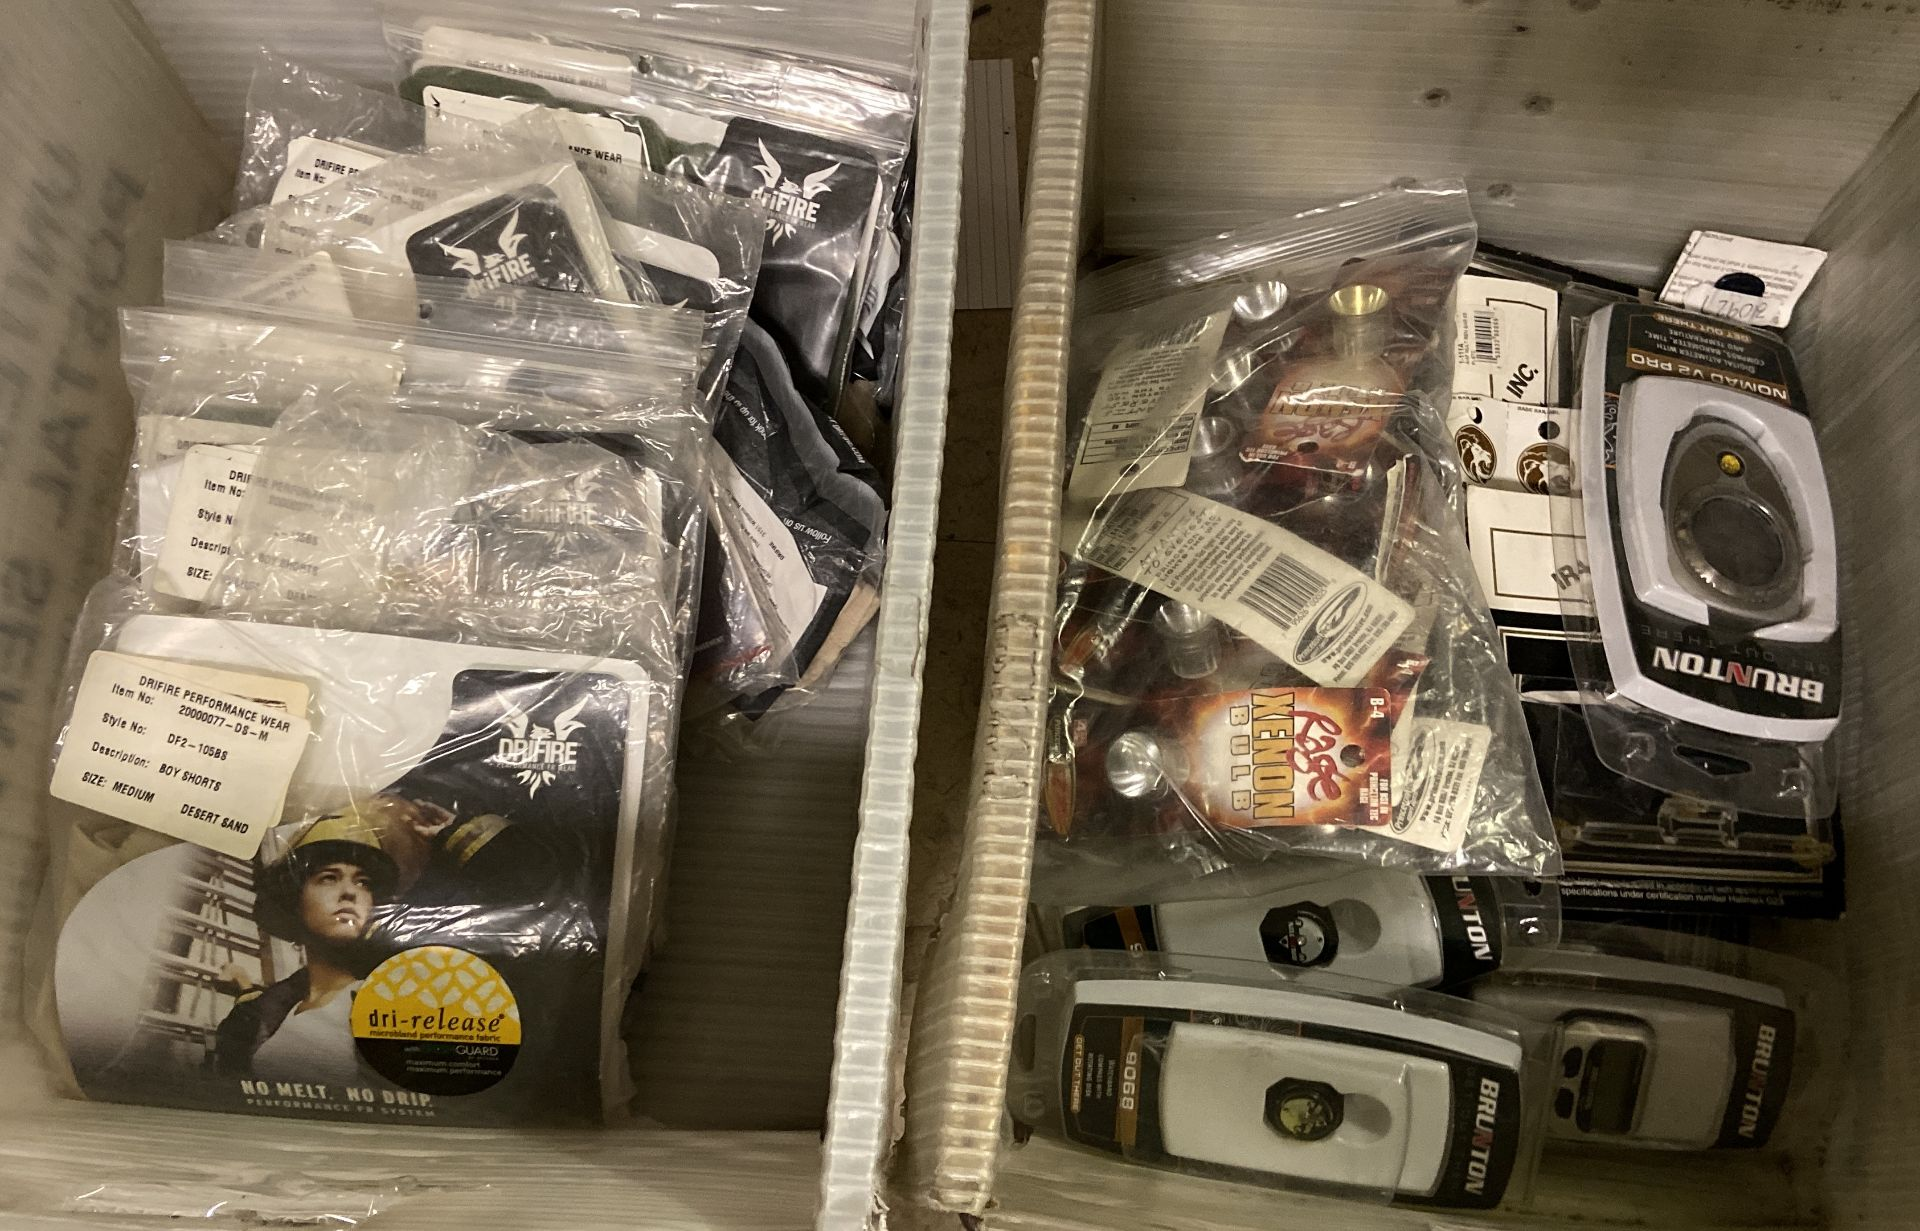 Mixed lot of Casio digital watches, tactical gear, etc. 50+ retail pieces - Image 3 of 3